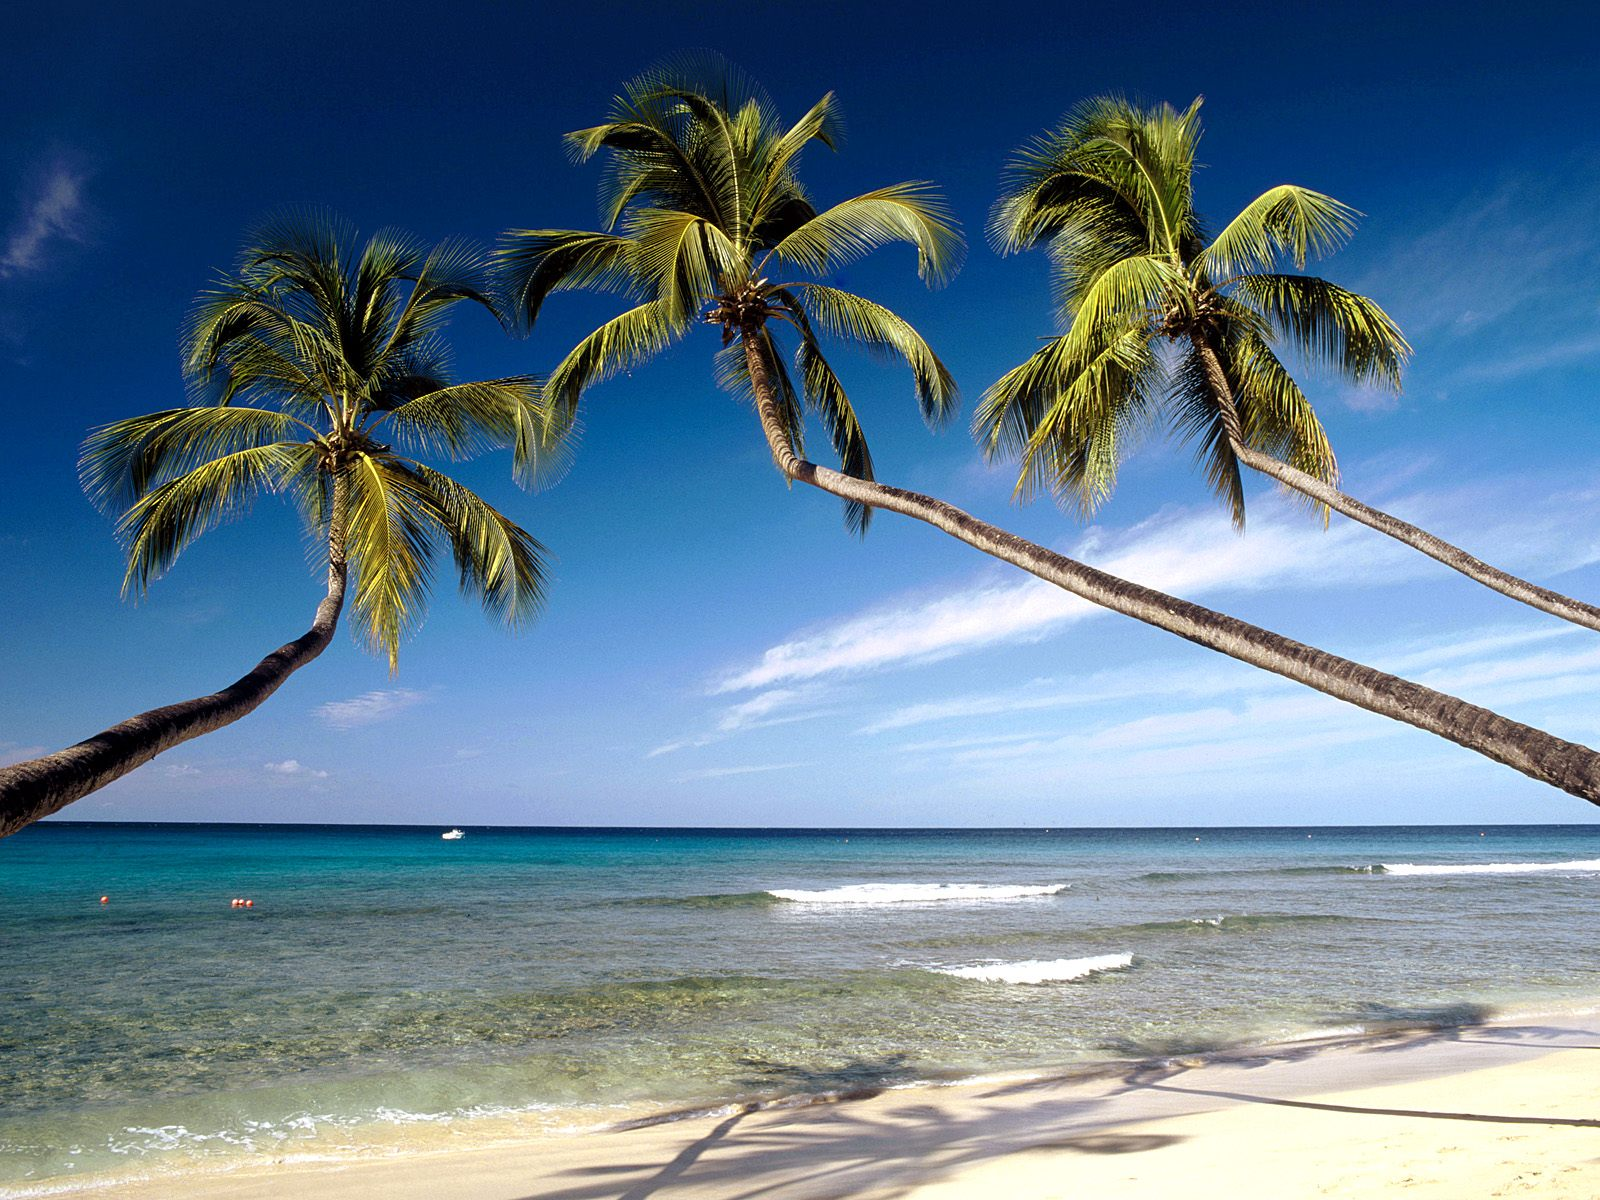 Caribbean beach wallpaper The Images 1600x1200